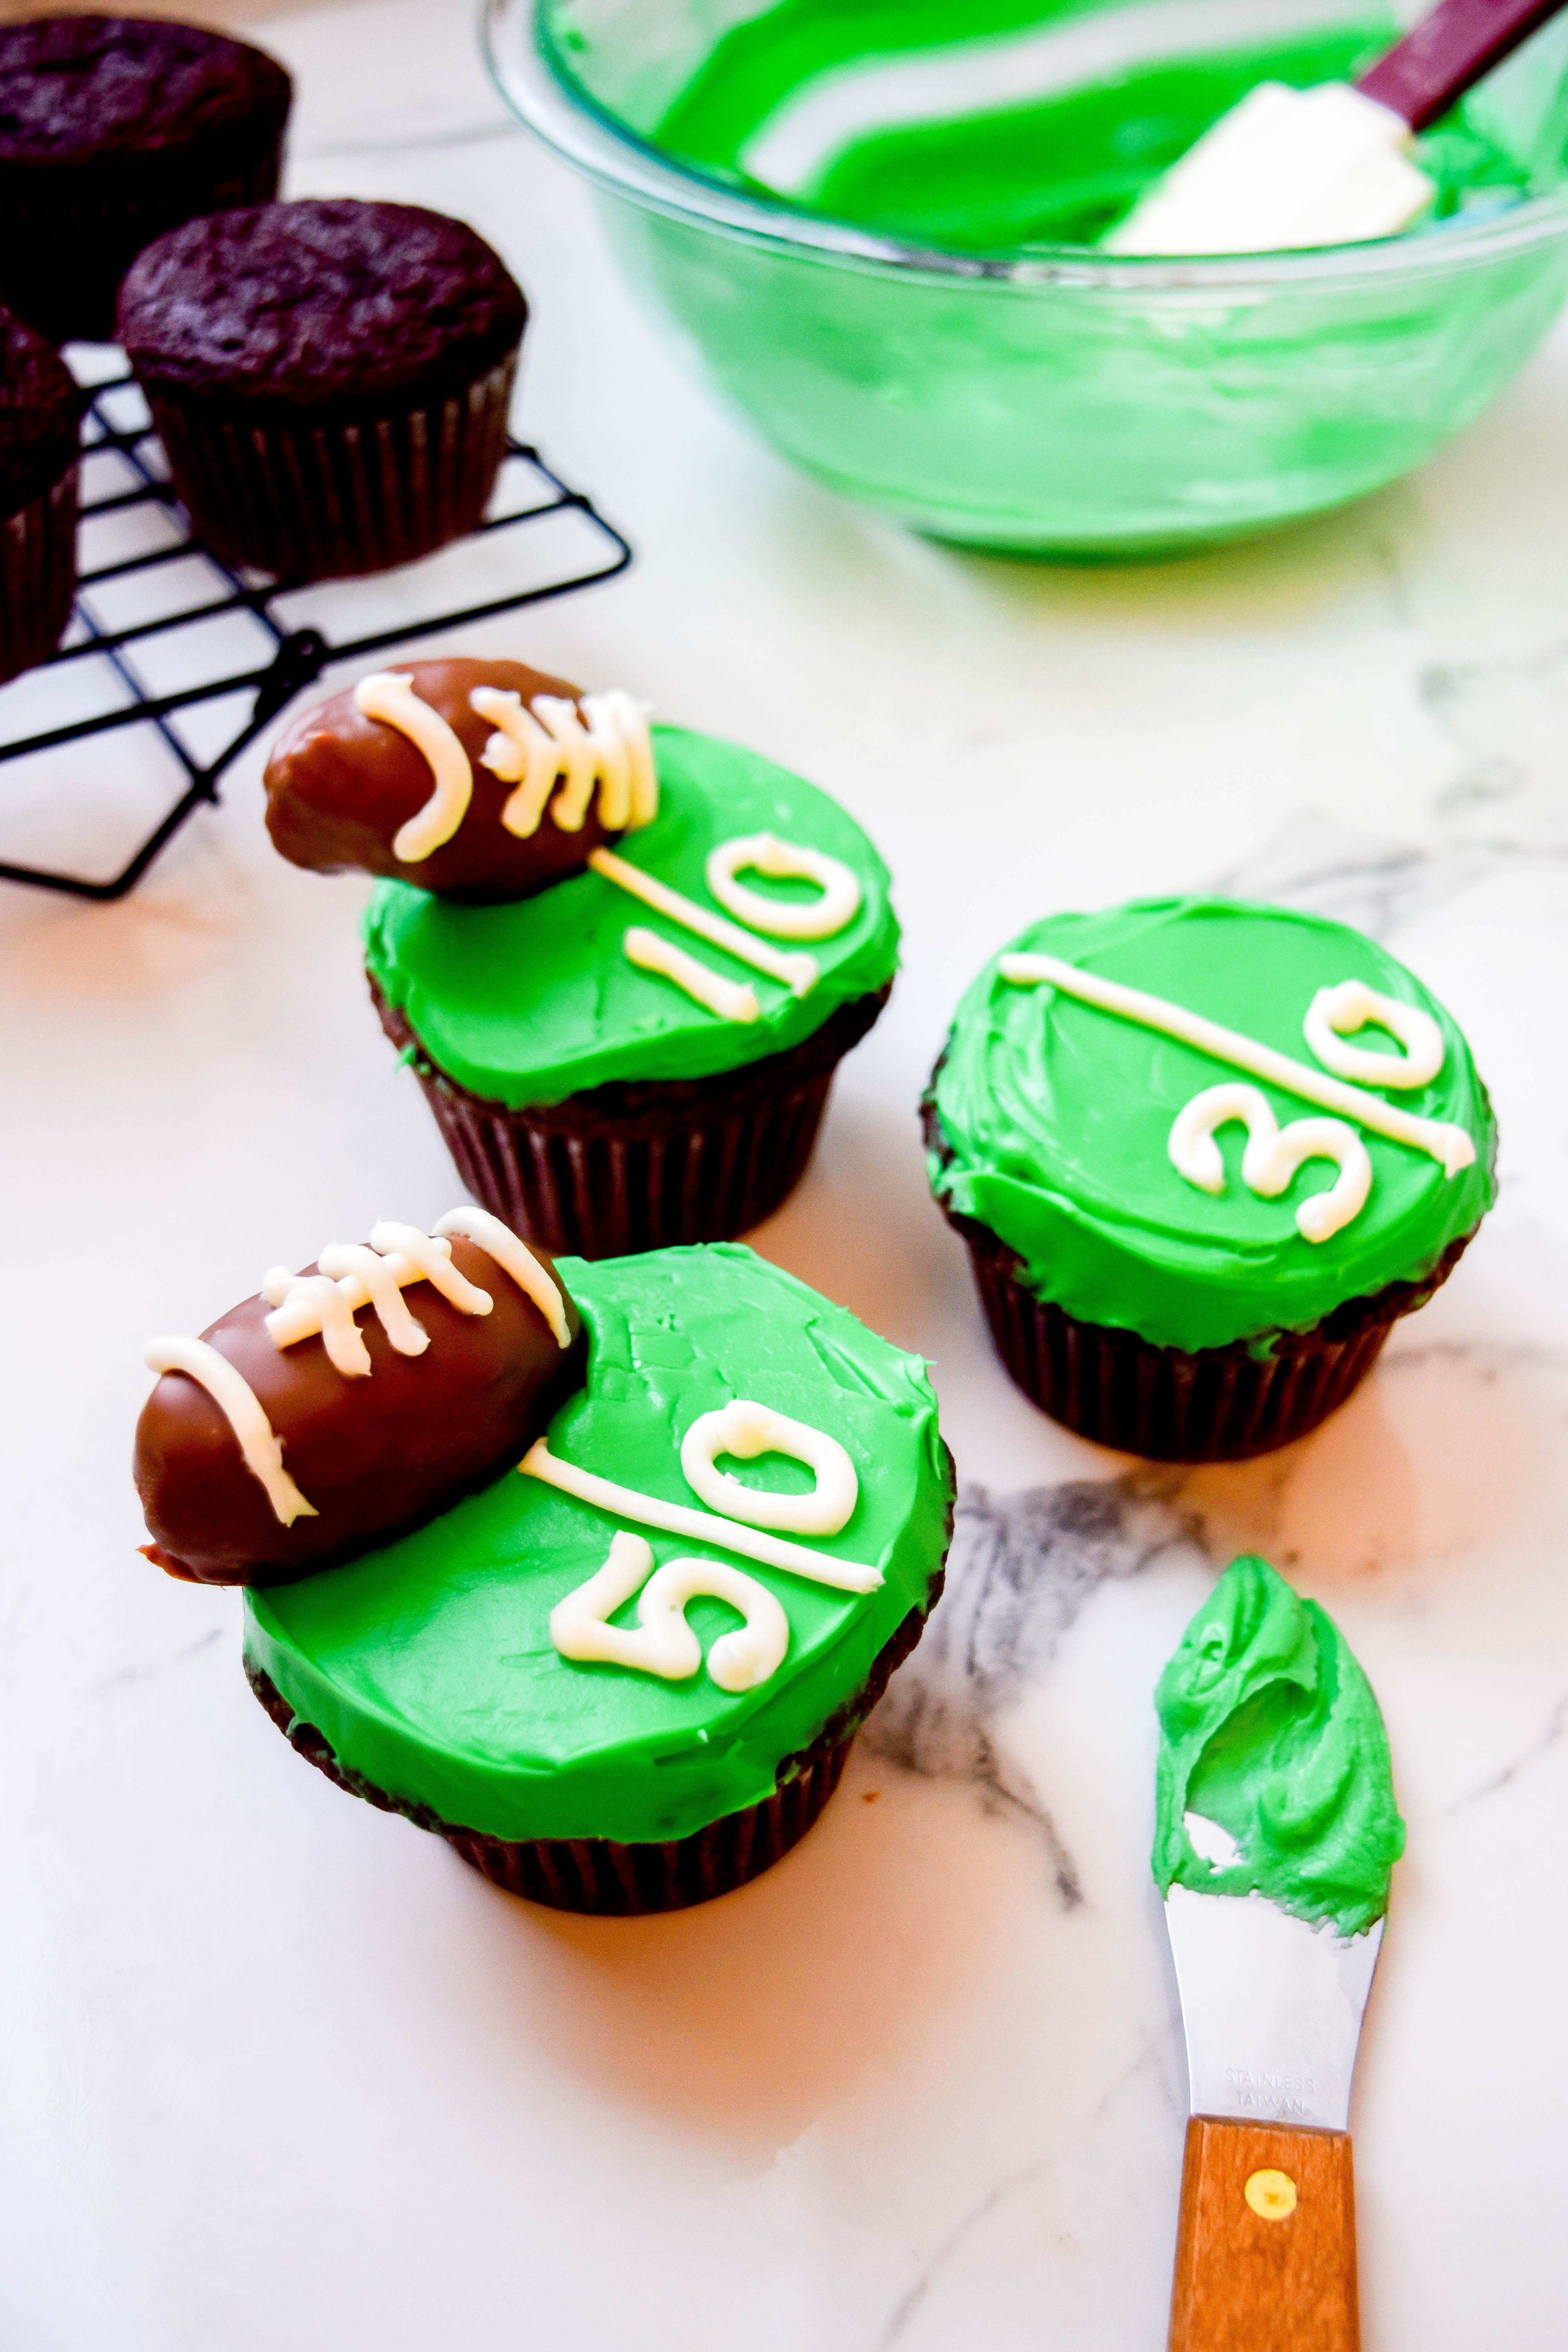 Game Day Cupcakes with football decorations.